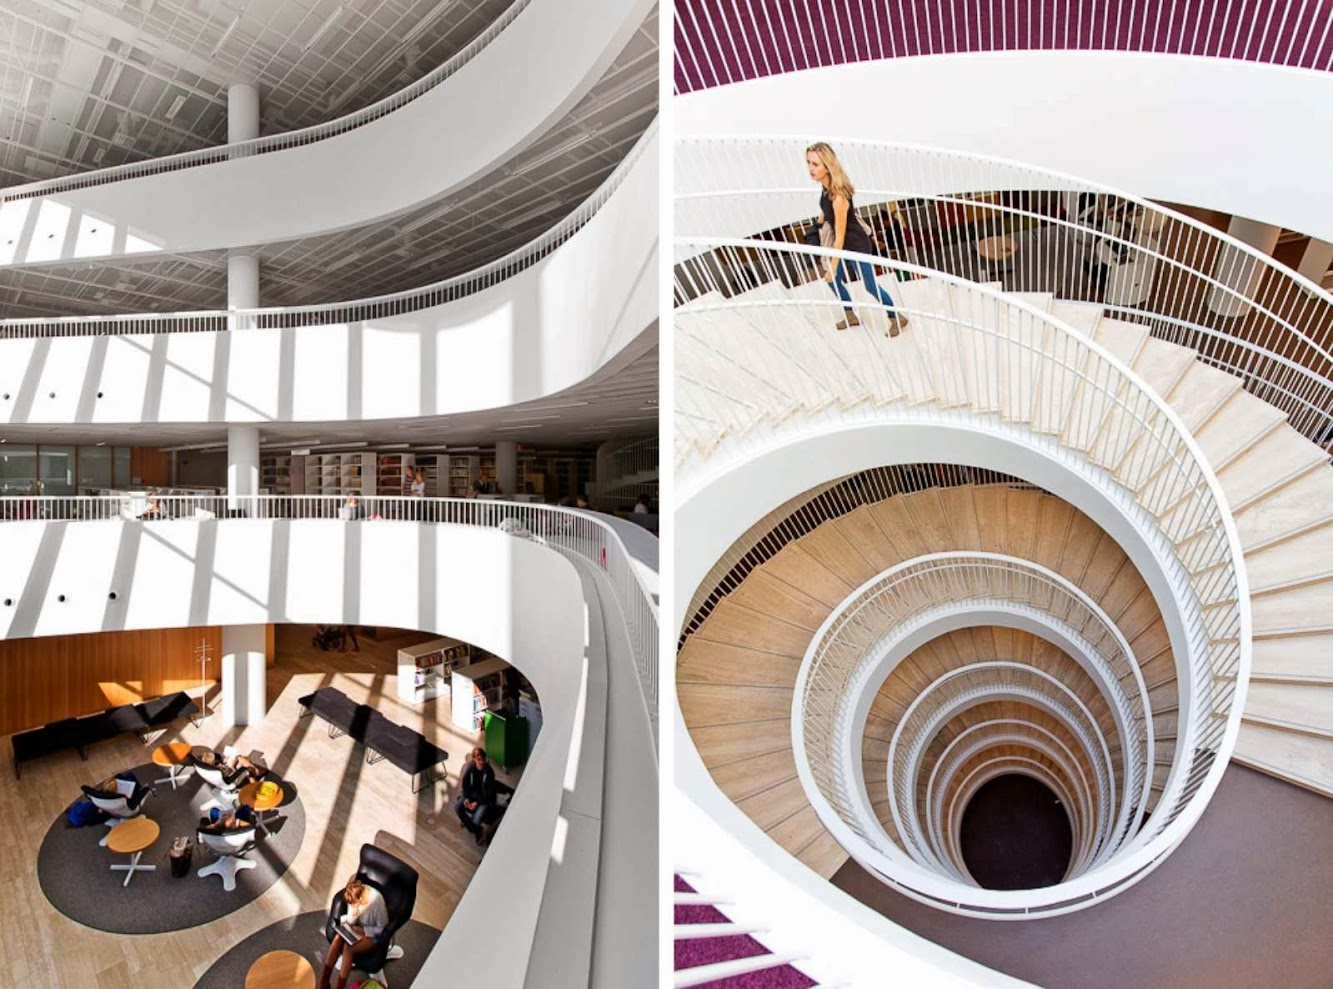 14Helsinki-University-Main-Library-by-Anttinen-Oiva-Architects